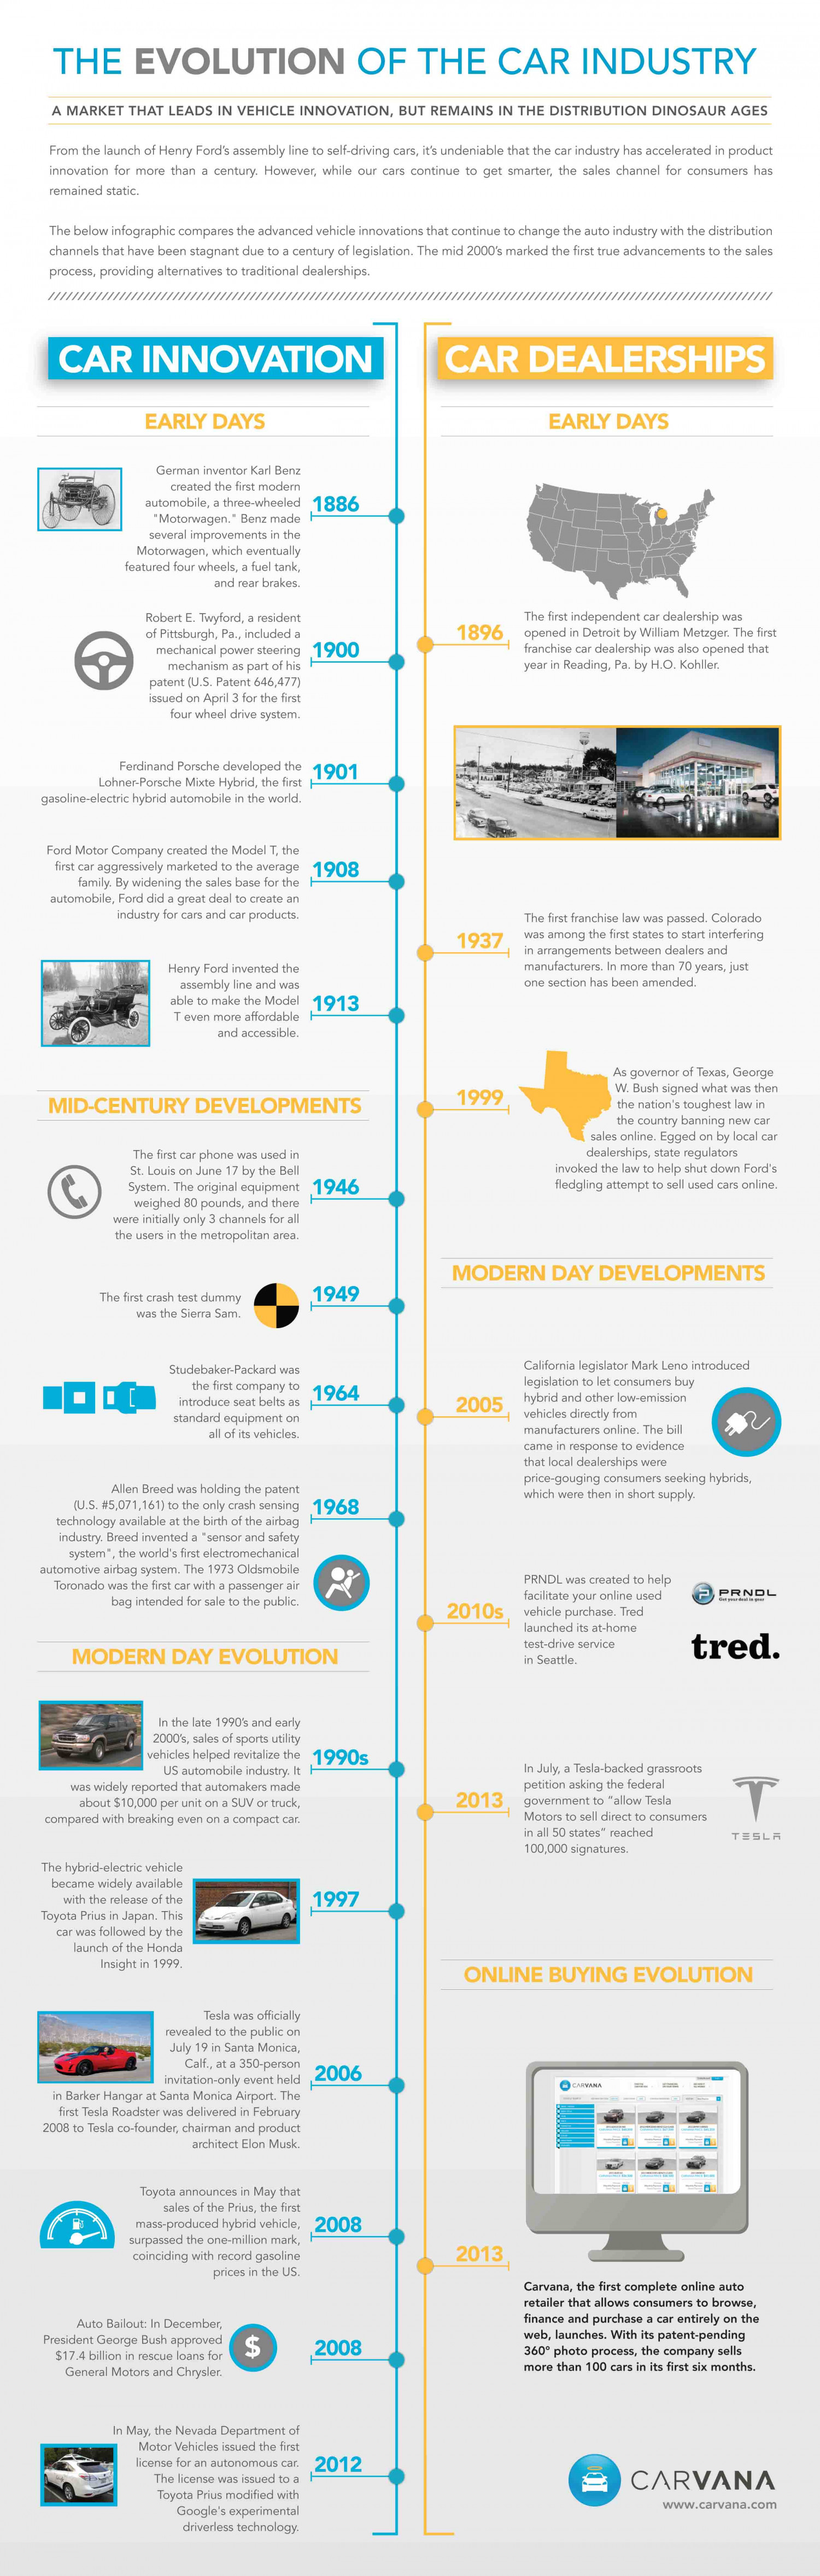 The Evolution of the Car Buying Industry Infographic